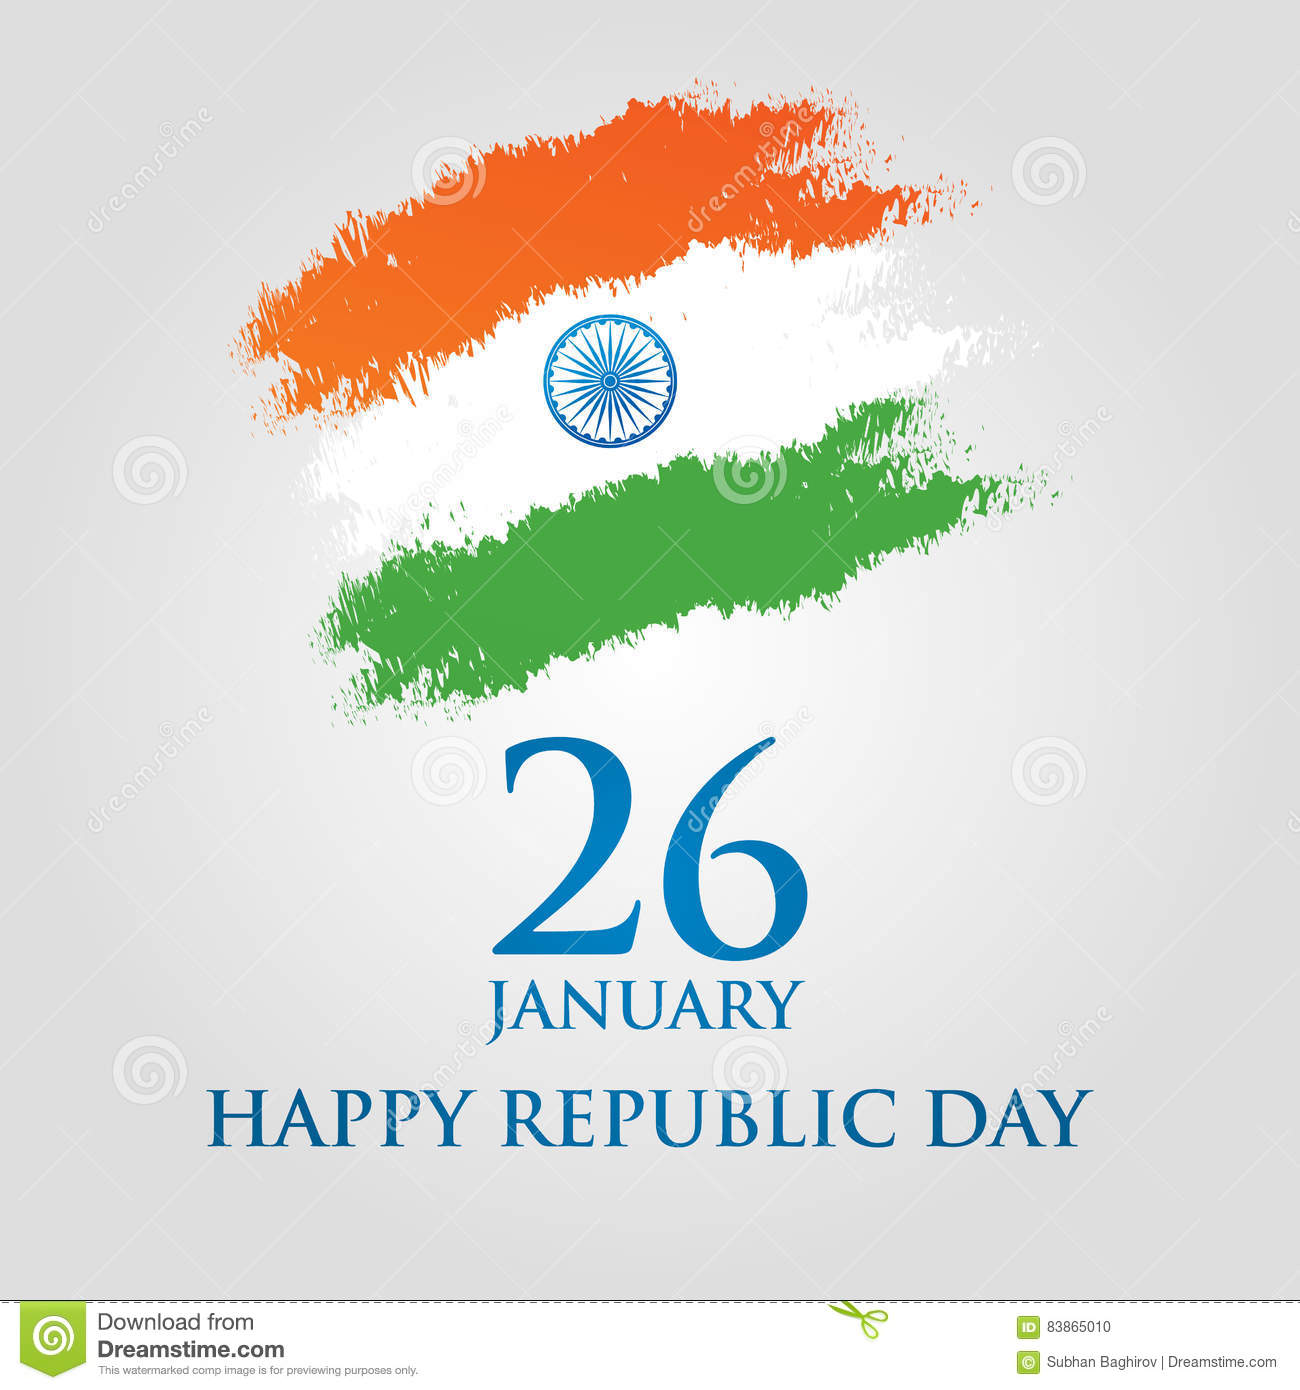 India republic day greeting card design vector illustration 26 download india republic day greeting card design vector illustration 26 january stock vector m4hsunfo